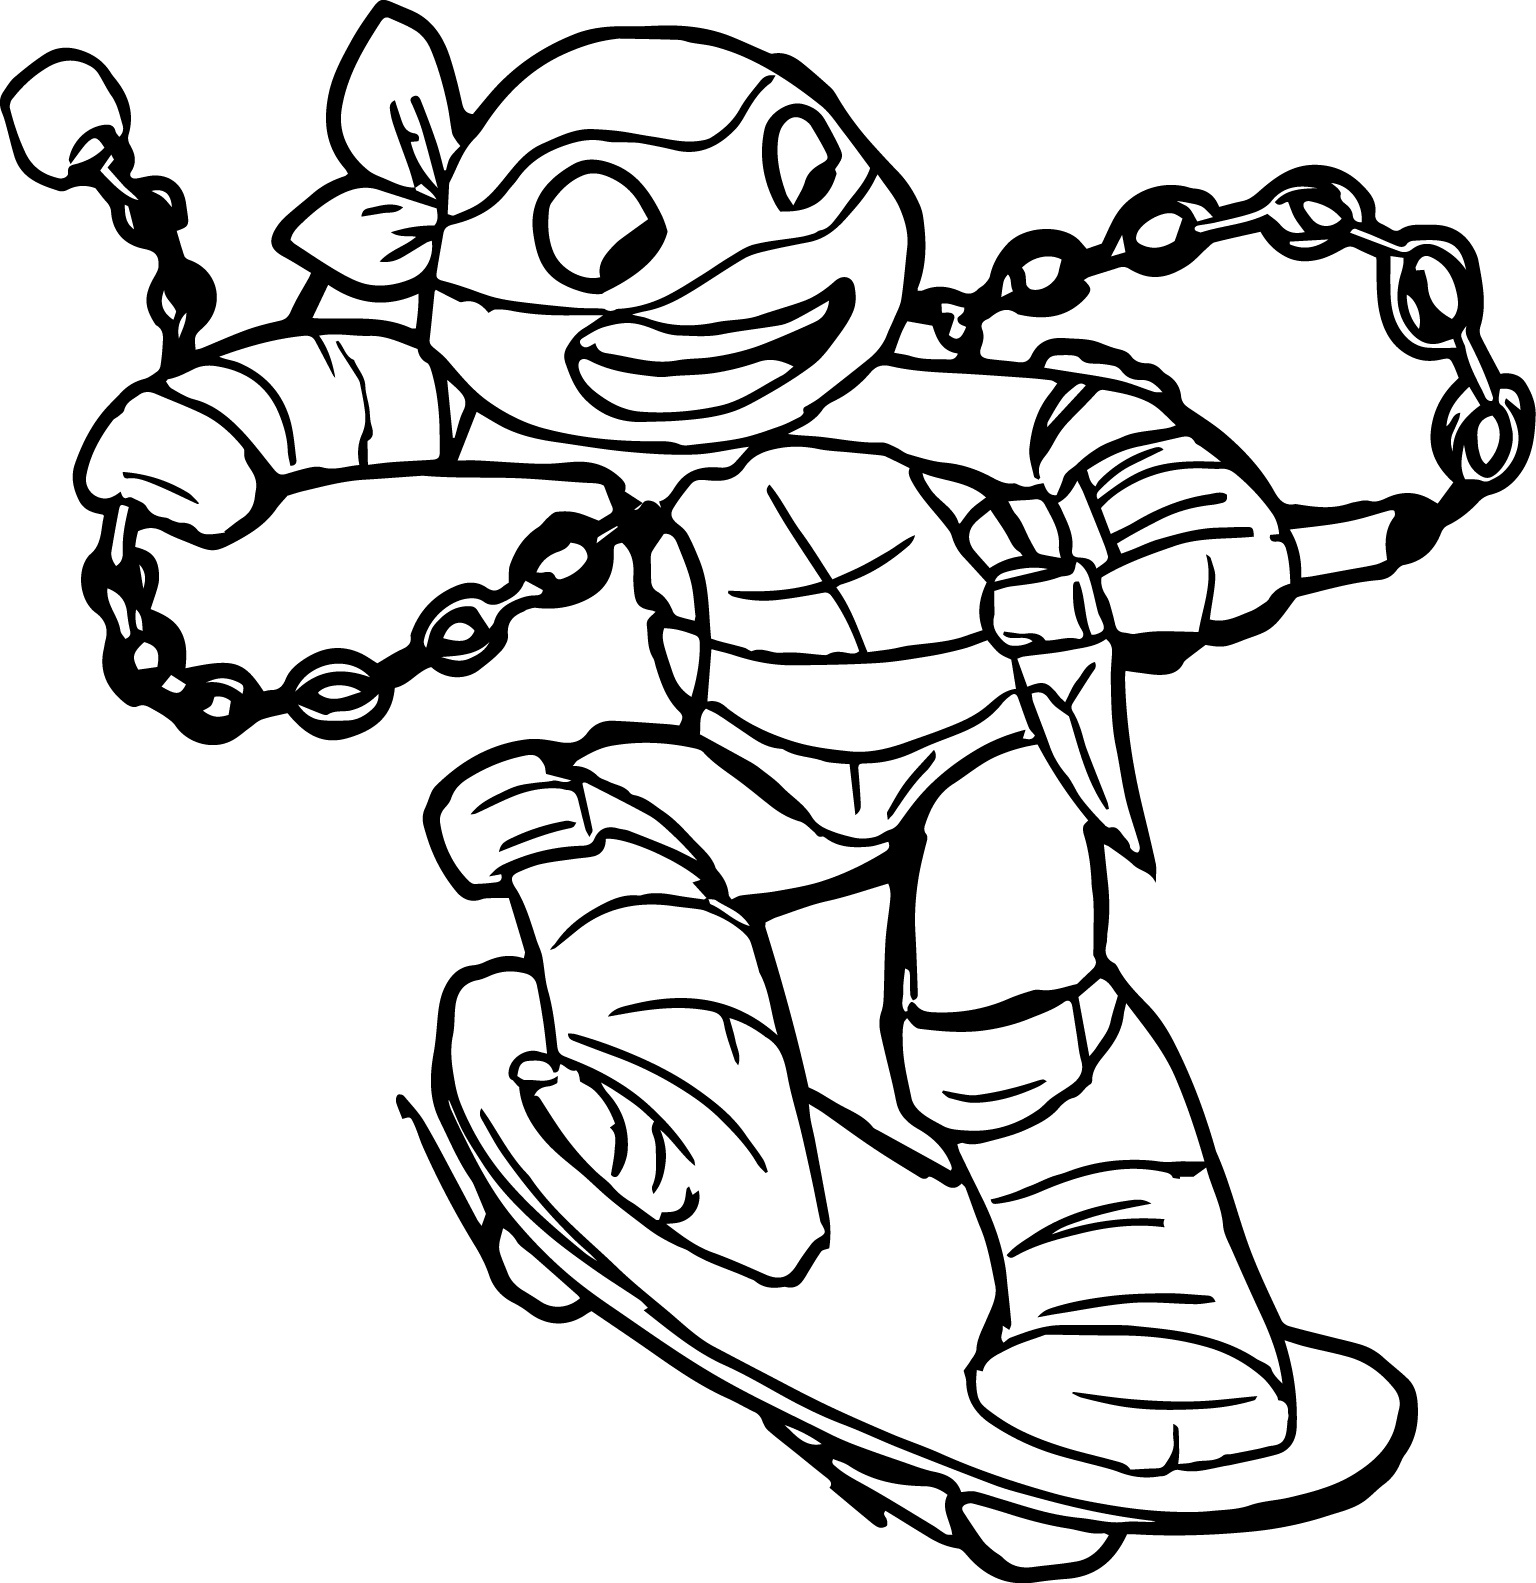 1536x1583 Simple Teenage Mutant Ninja Turtles Free Coloring Pages Teenage